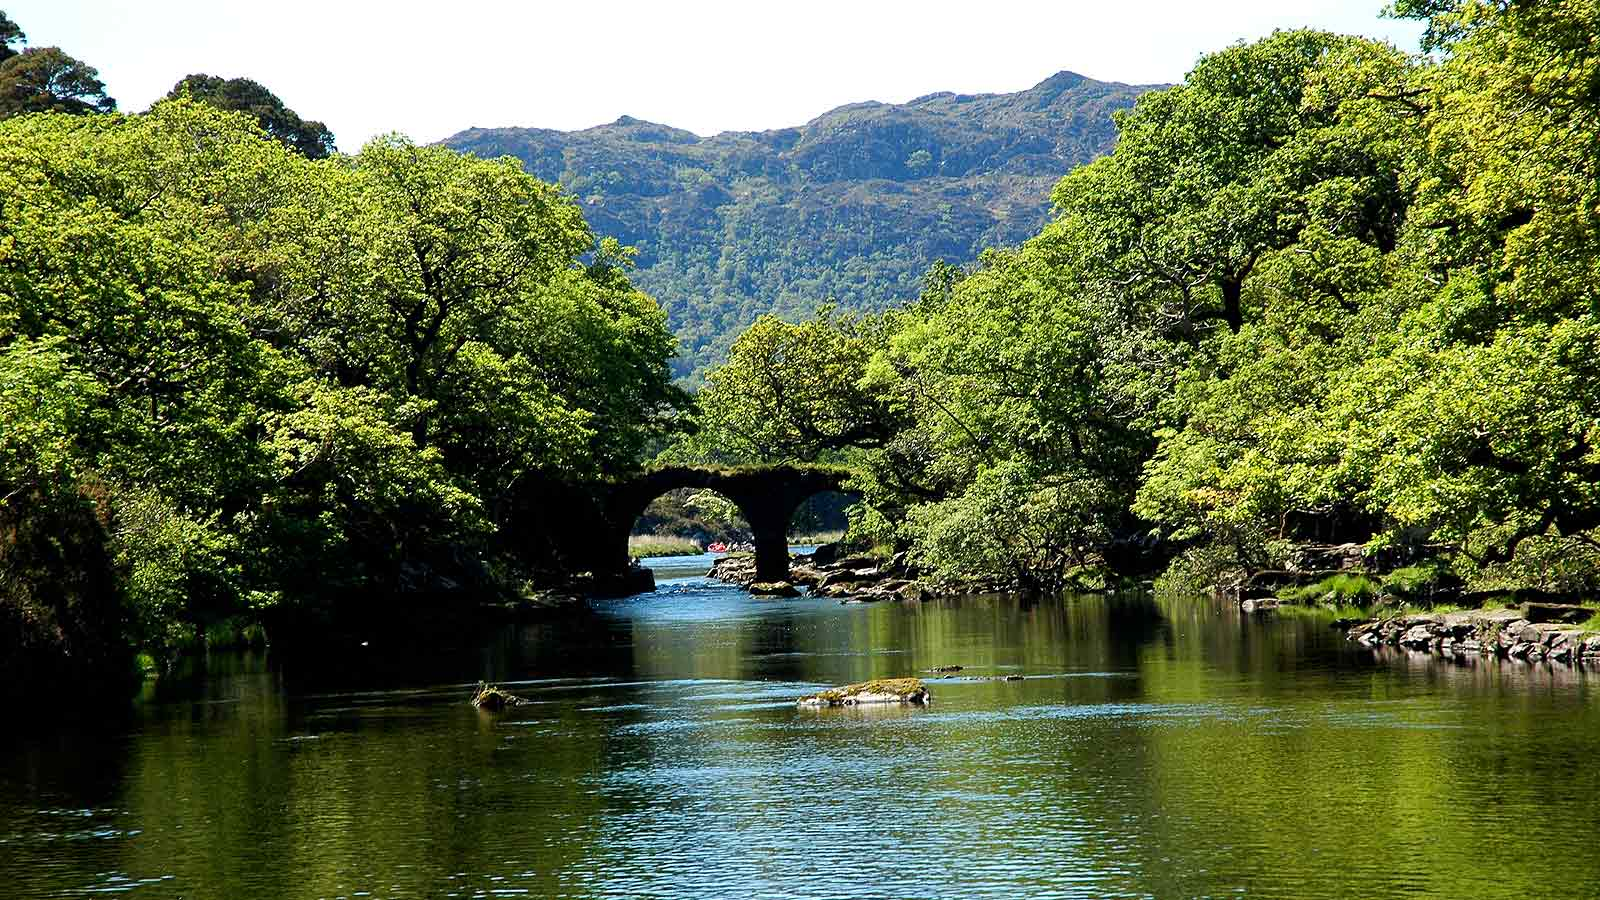 Killarney Park Hotel Image Gallery: 13 Photos Of Ireland Just Looking Bloody Glorious In The